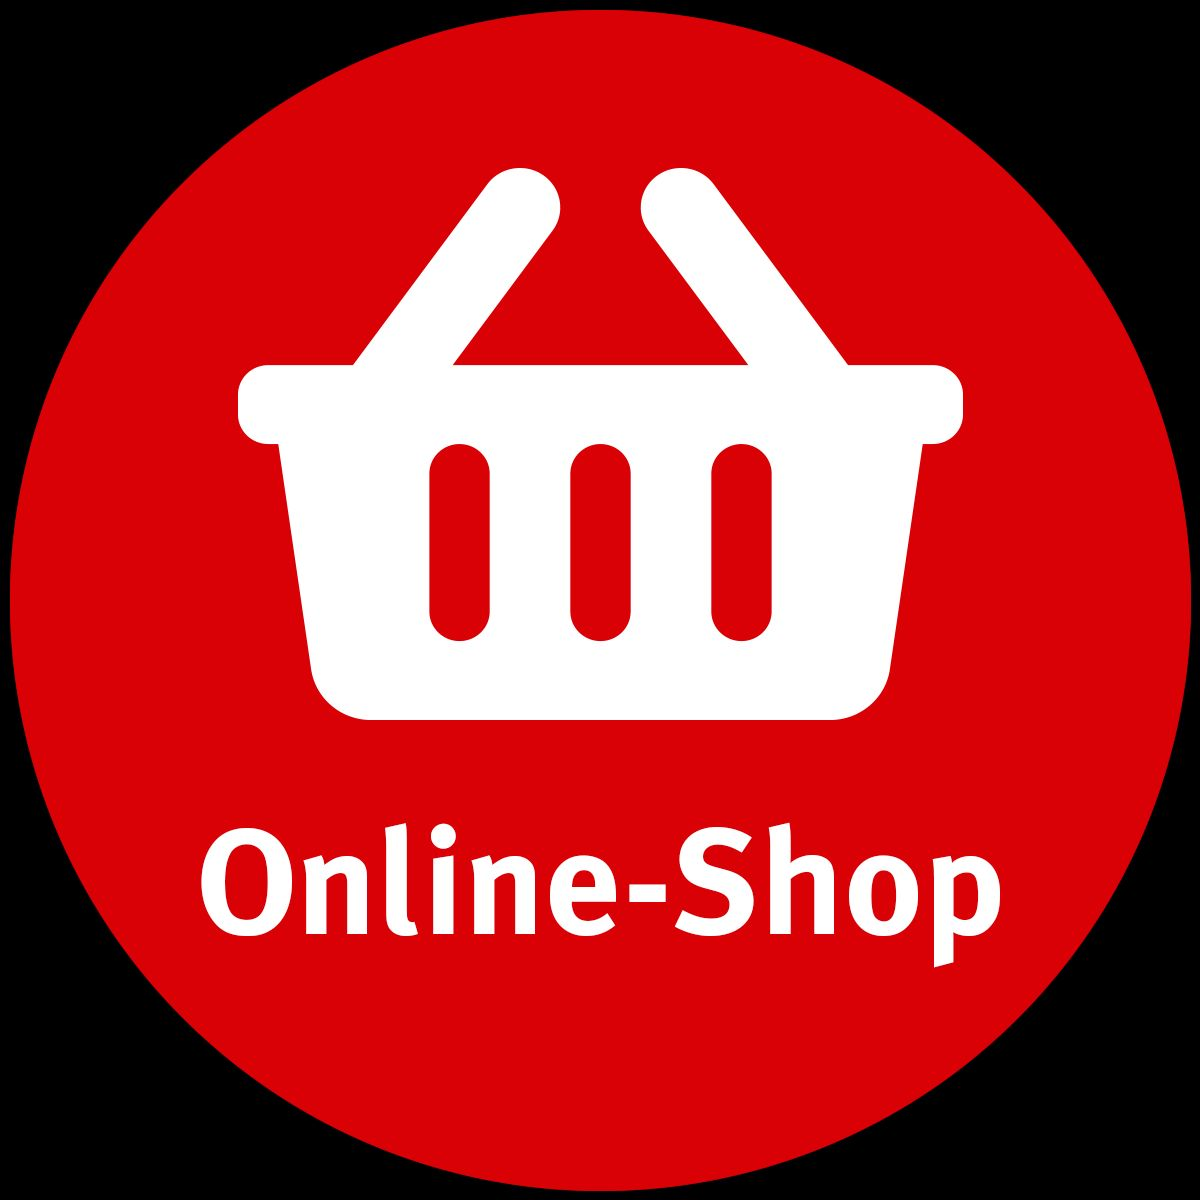 bade-online-shop.jpg